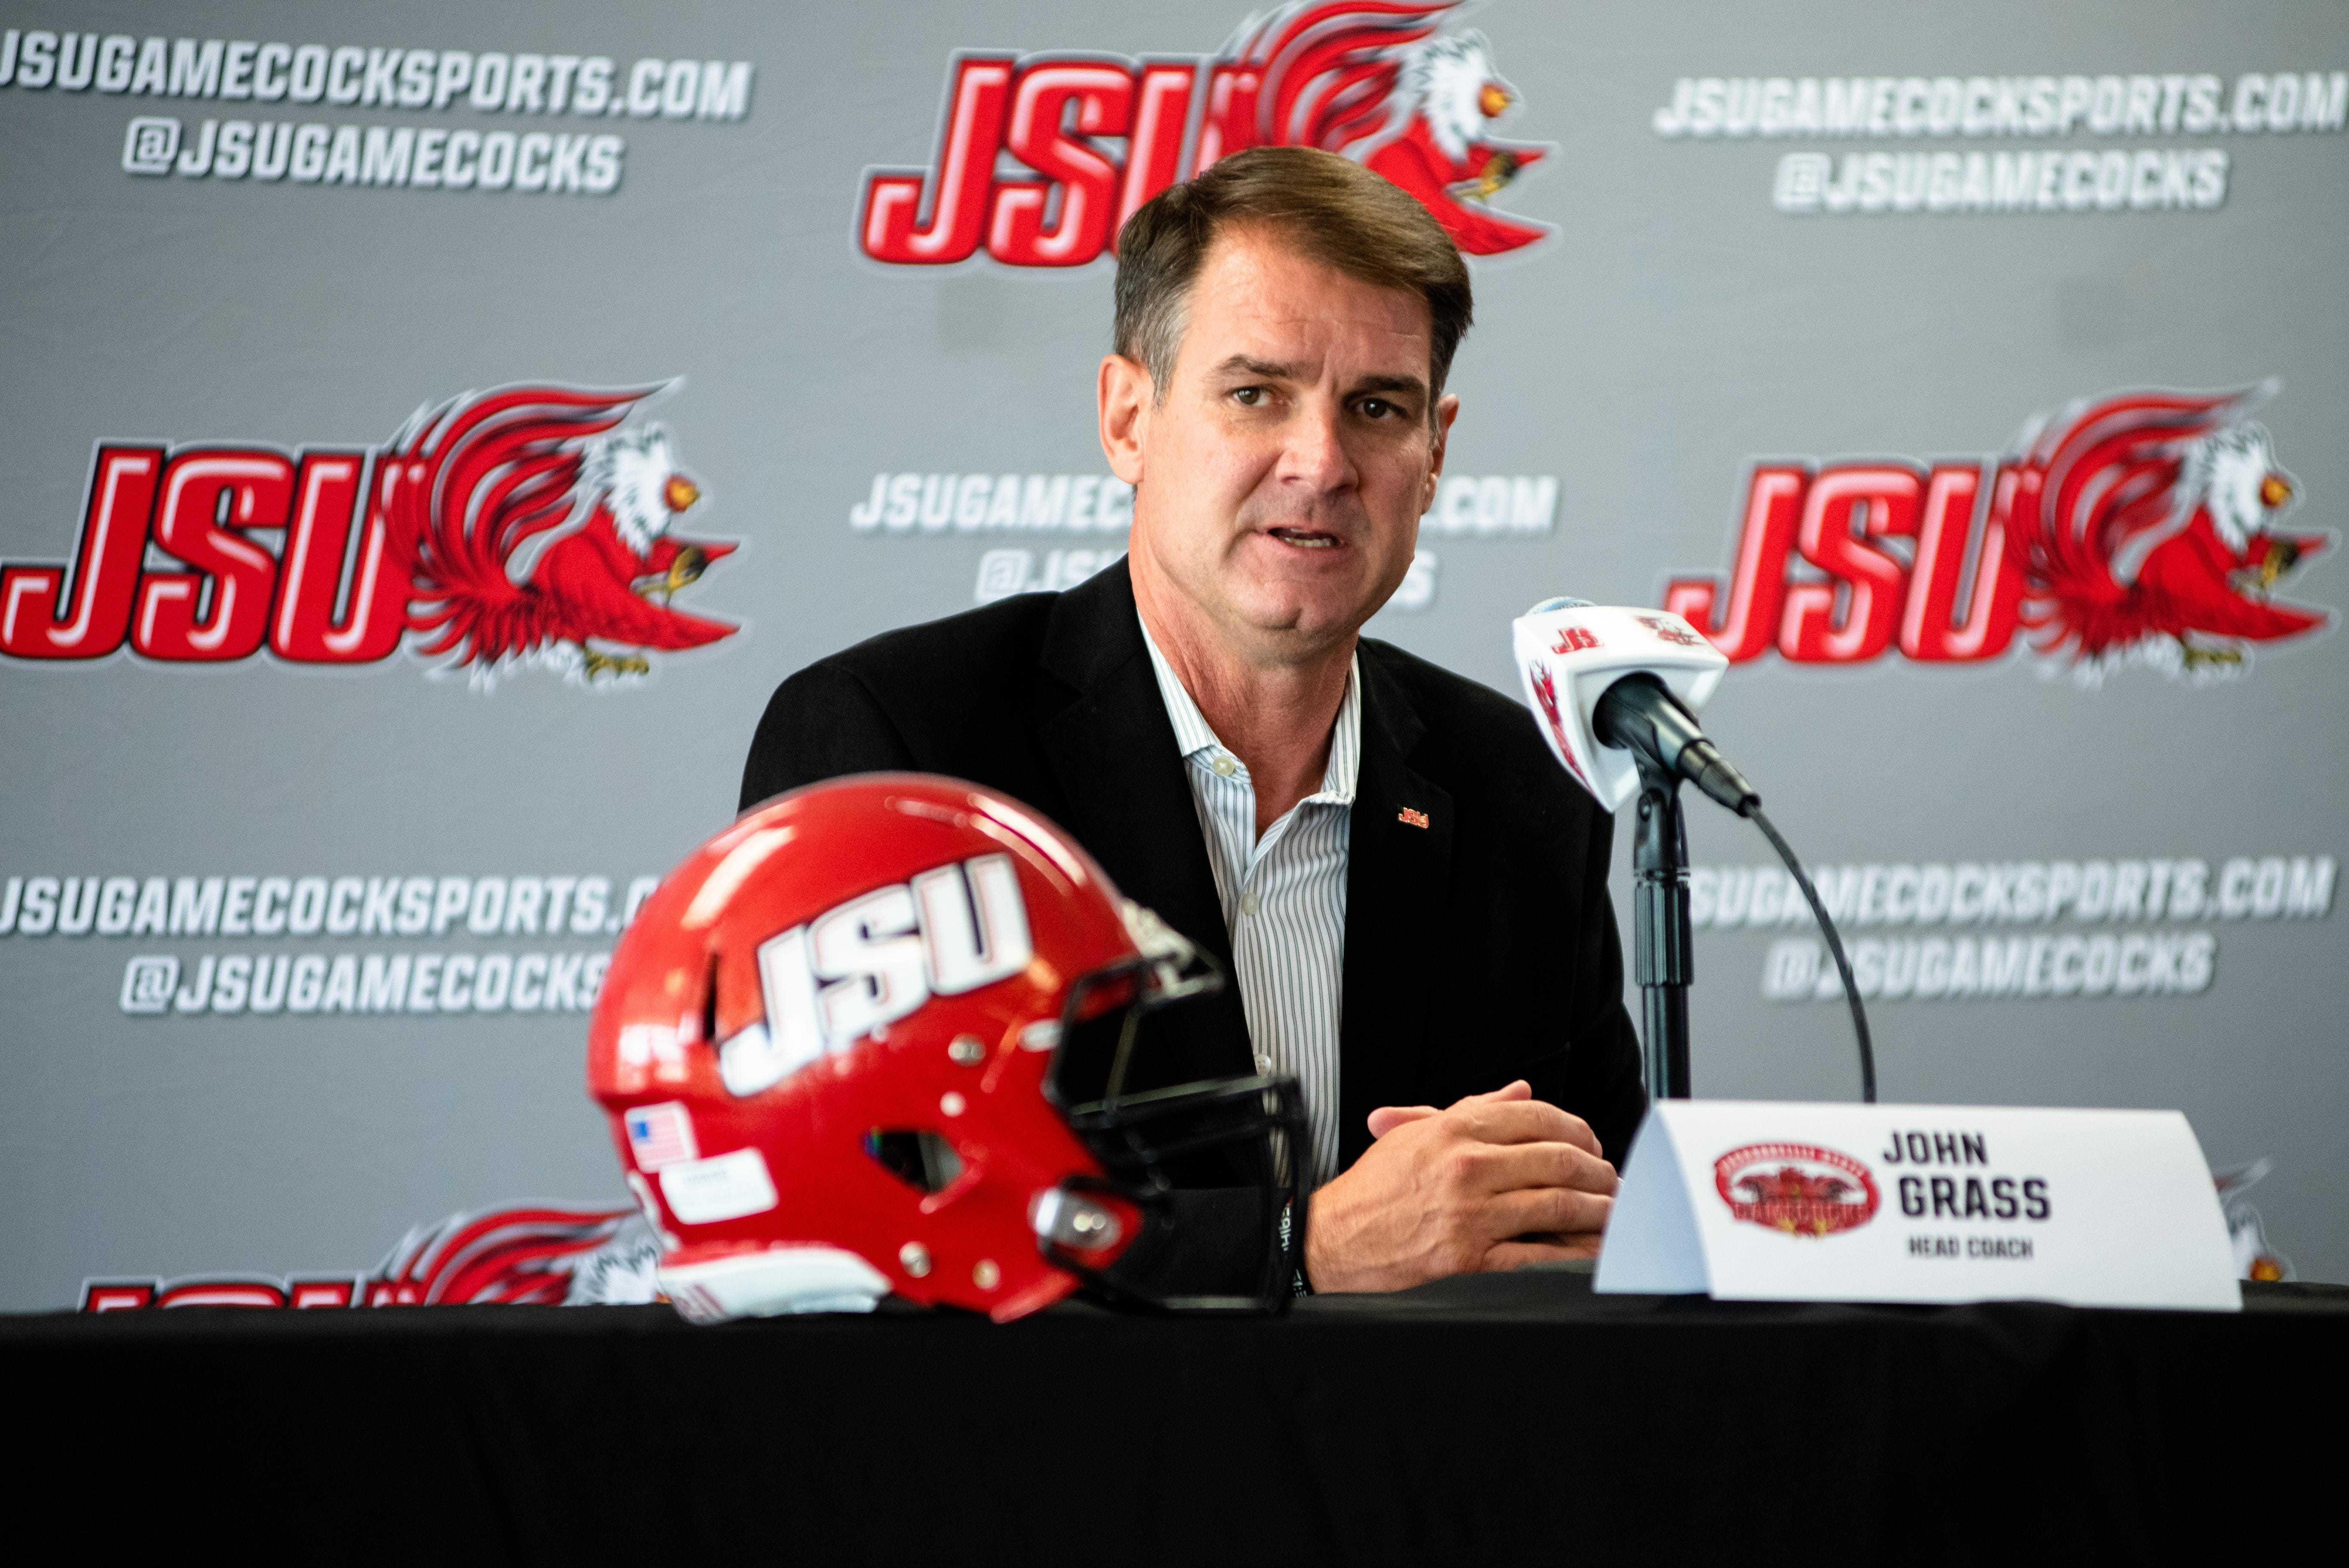 Jacksonville State football coach John Grass tests positive for COVID-19